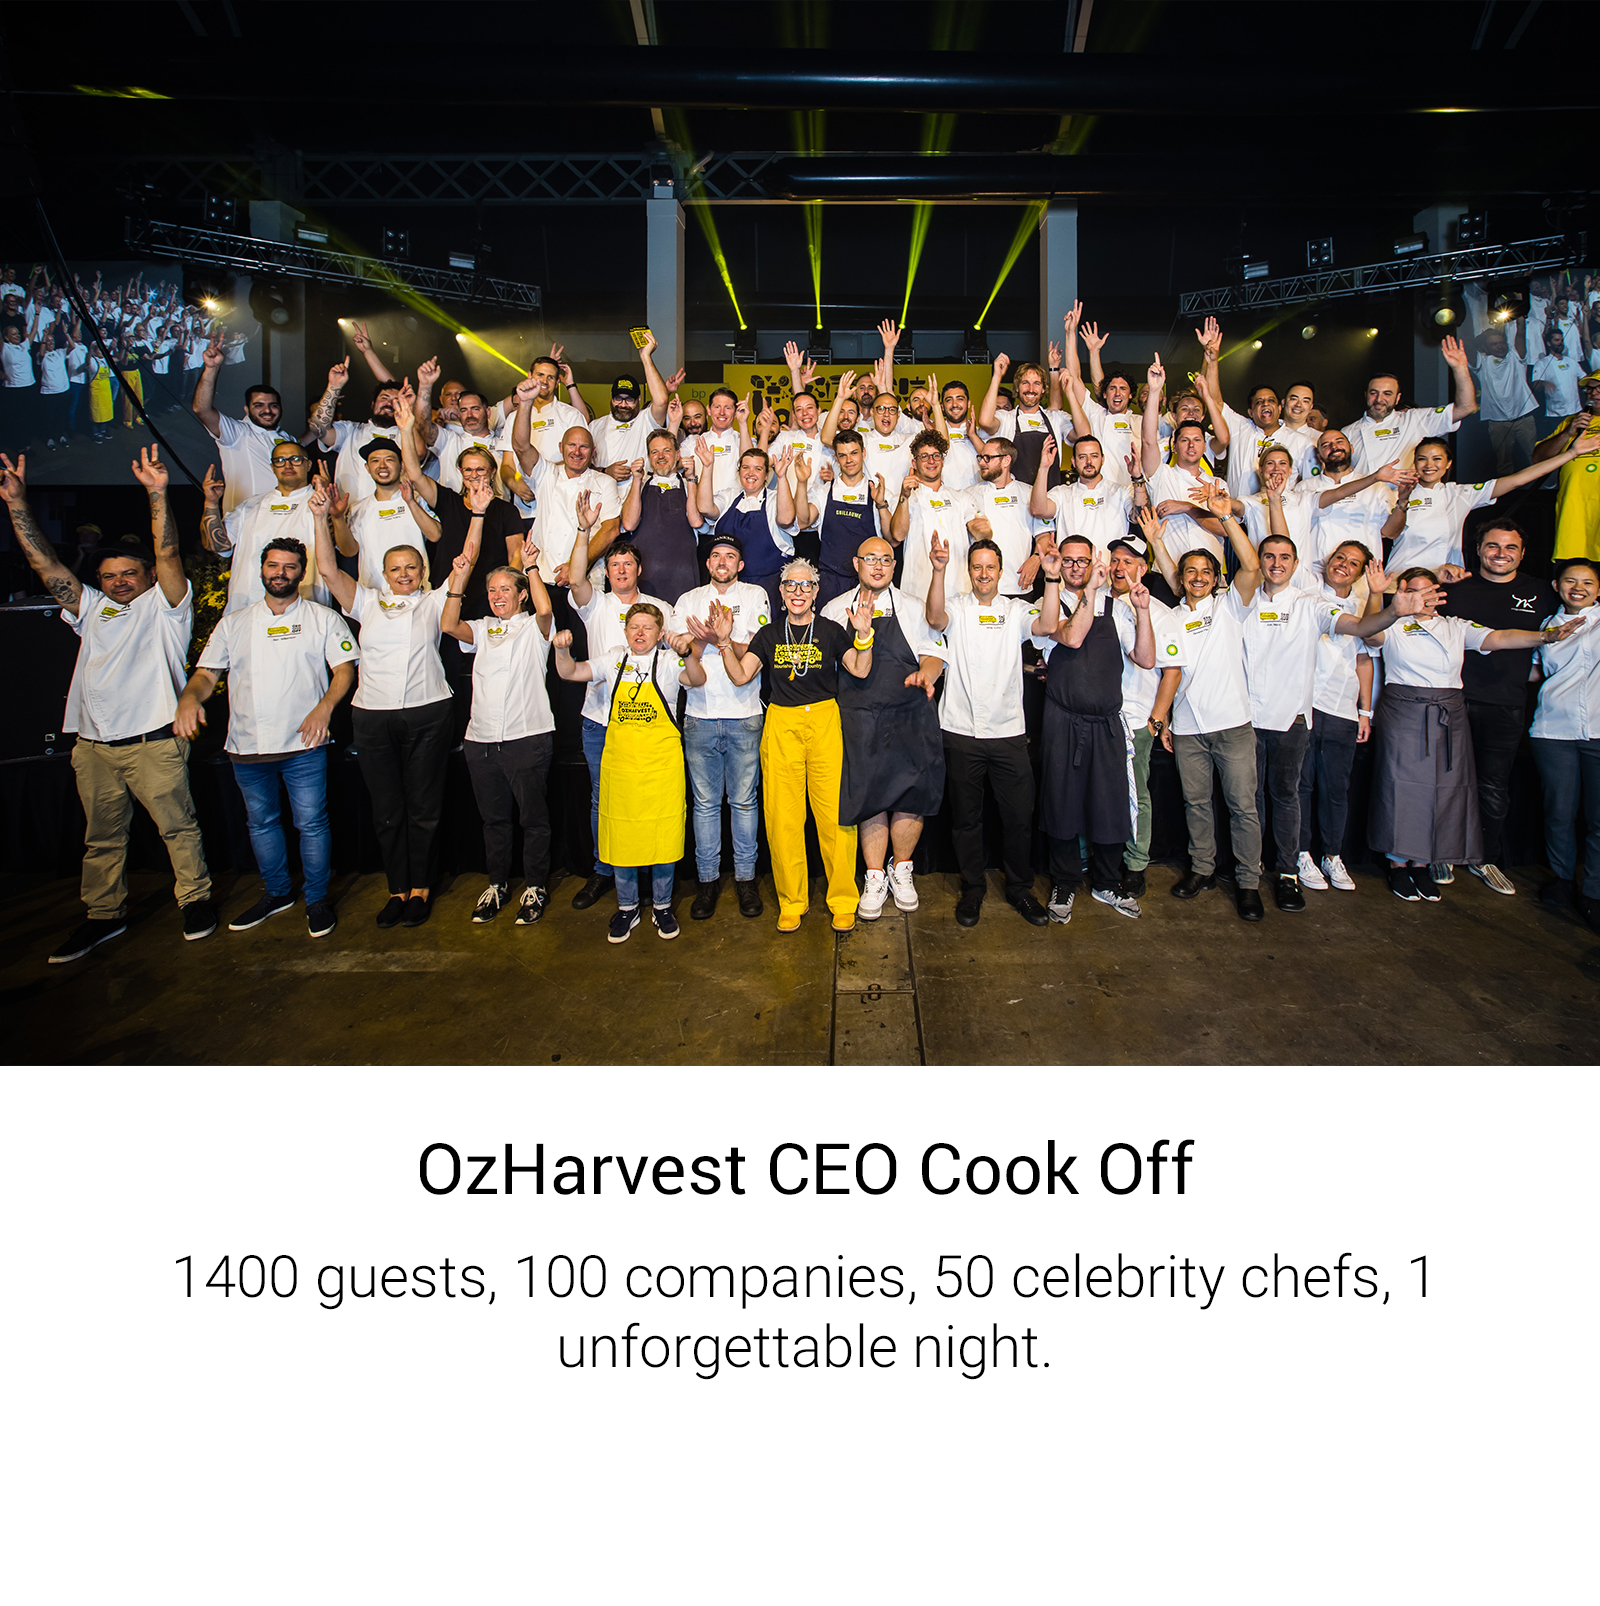 OzHarvest CEO Cook Off